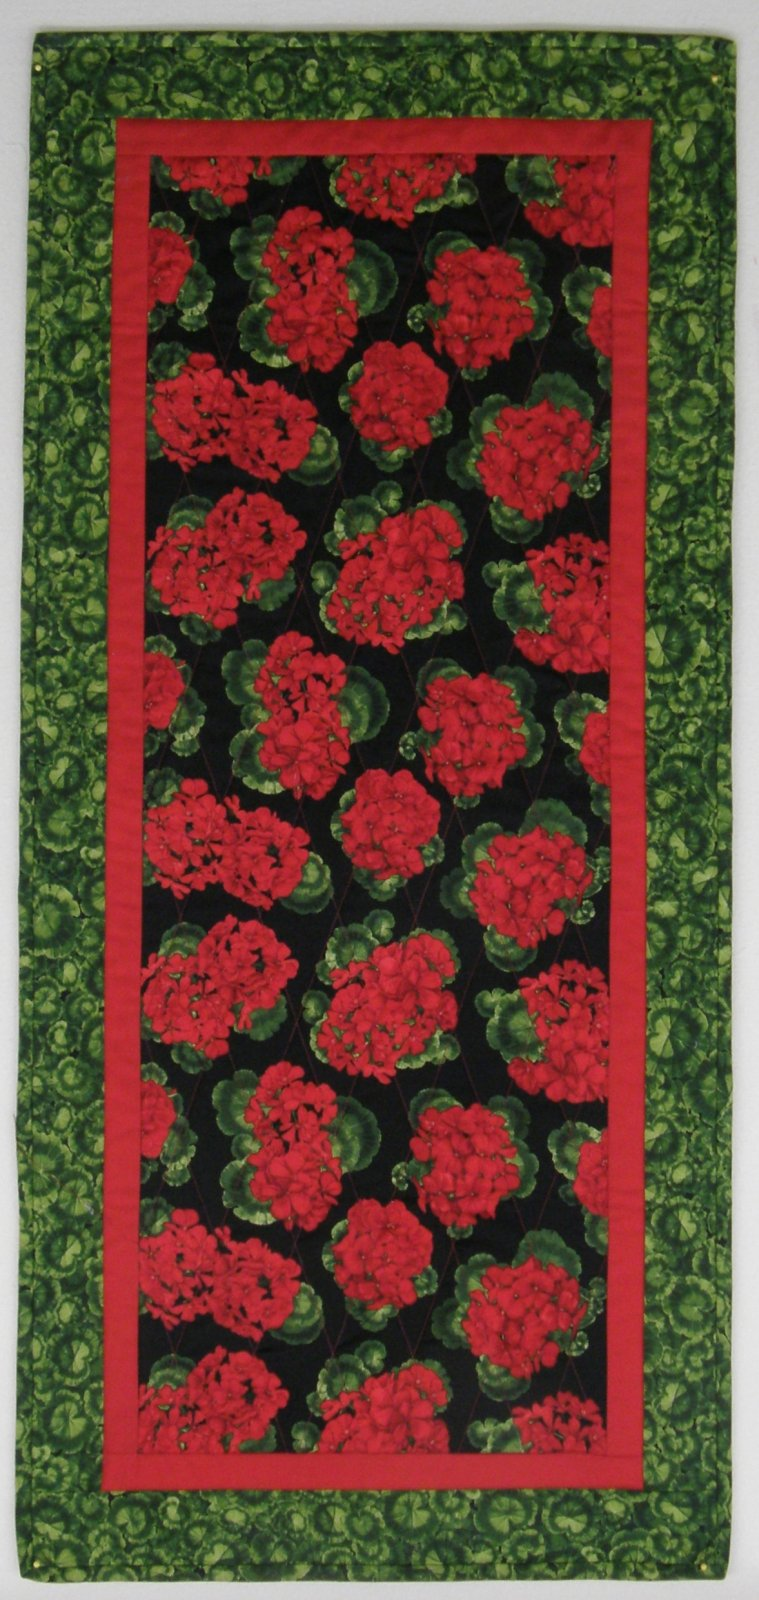 Geranium Table Runner Kit